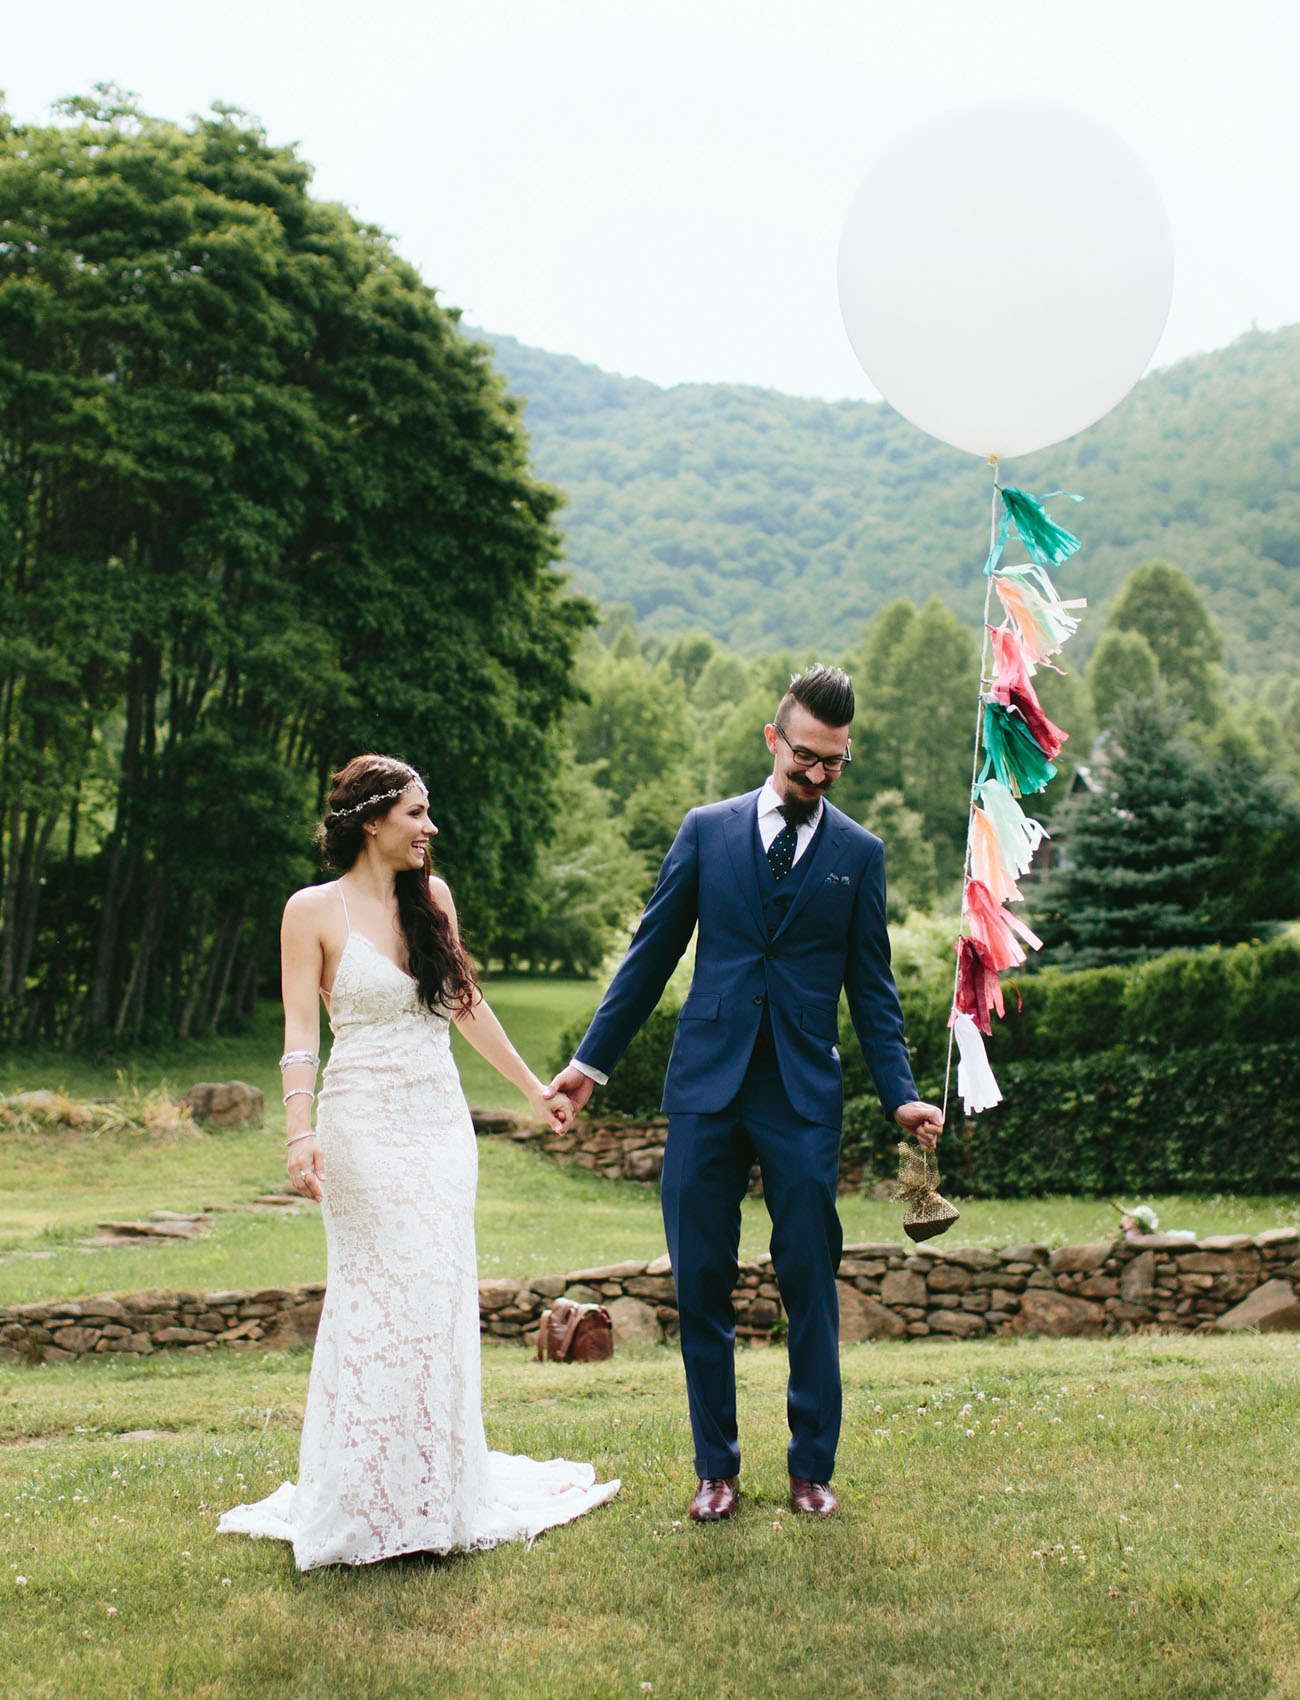 Artsy Bohemian Mountain Wedding: Sarah + Drew